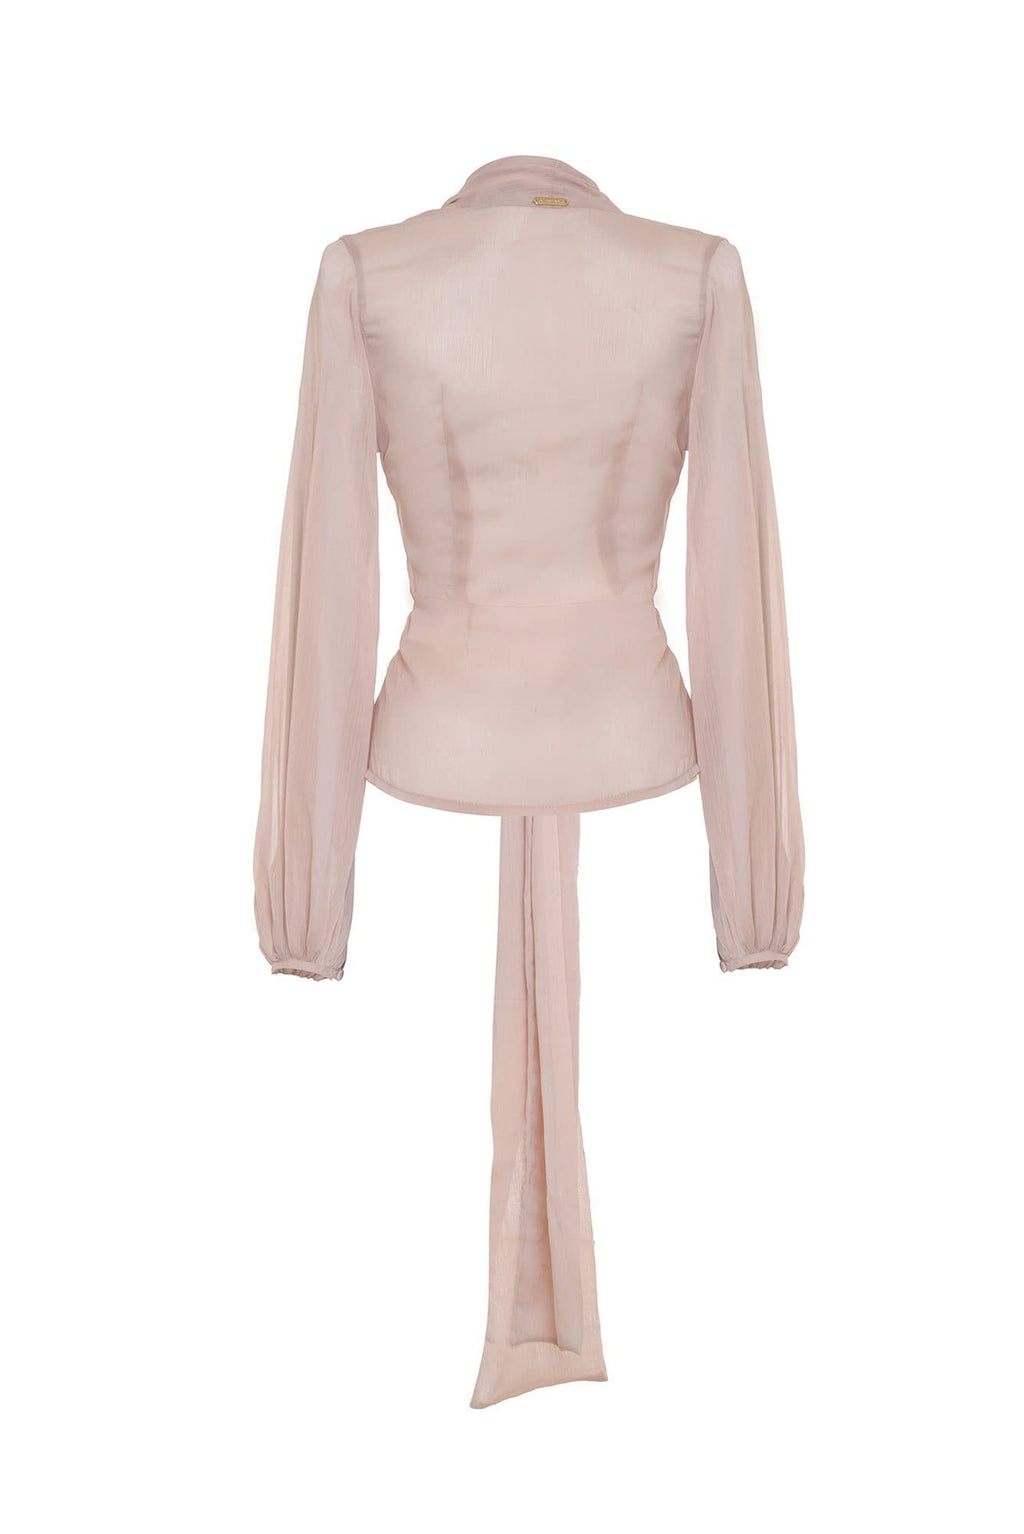 Nude Carlota Blouse - BYTRIBUTE